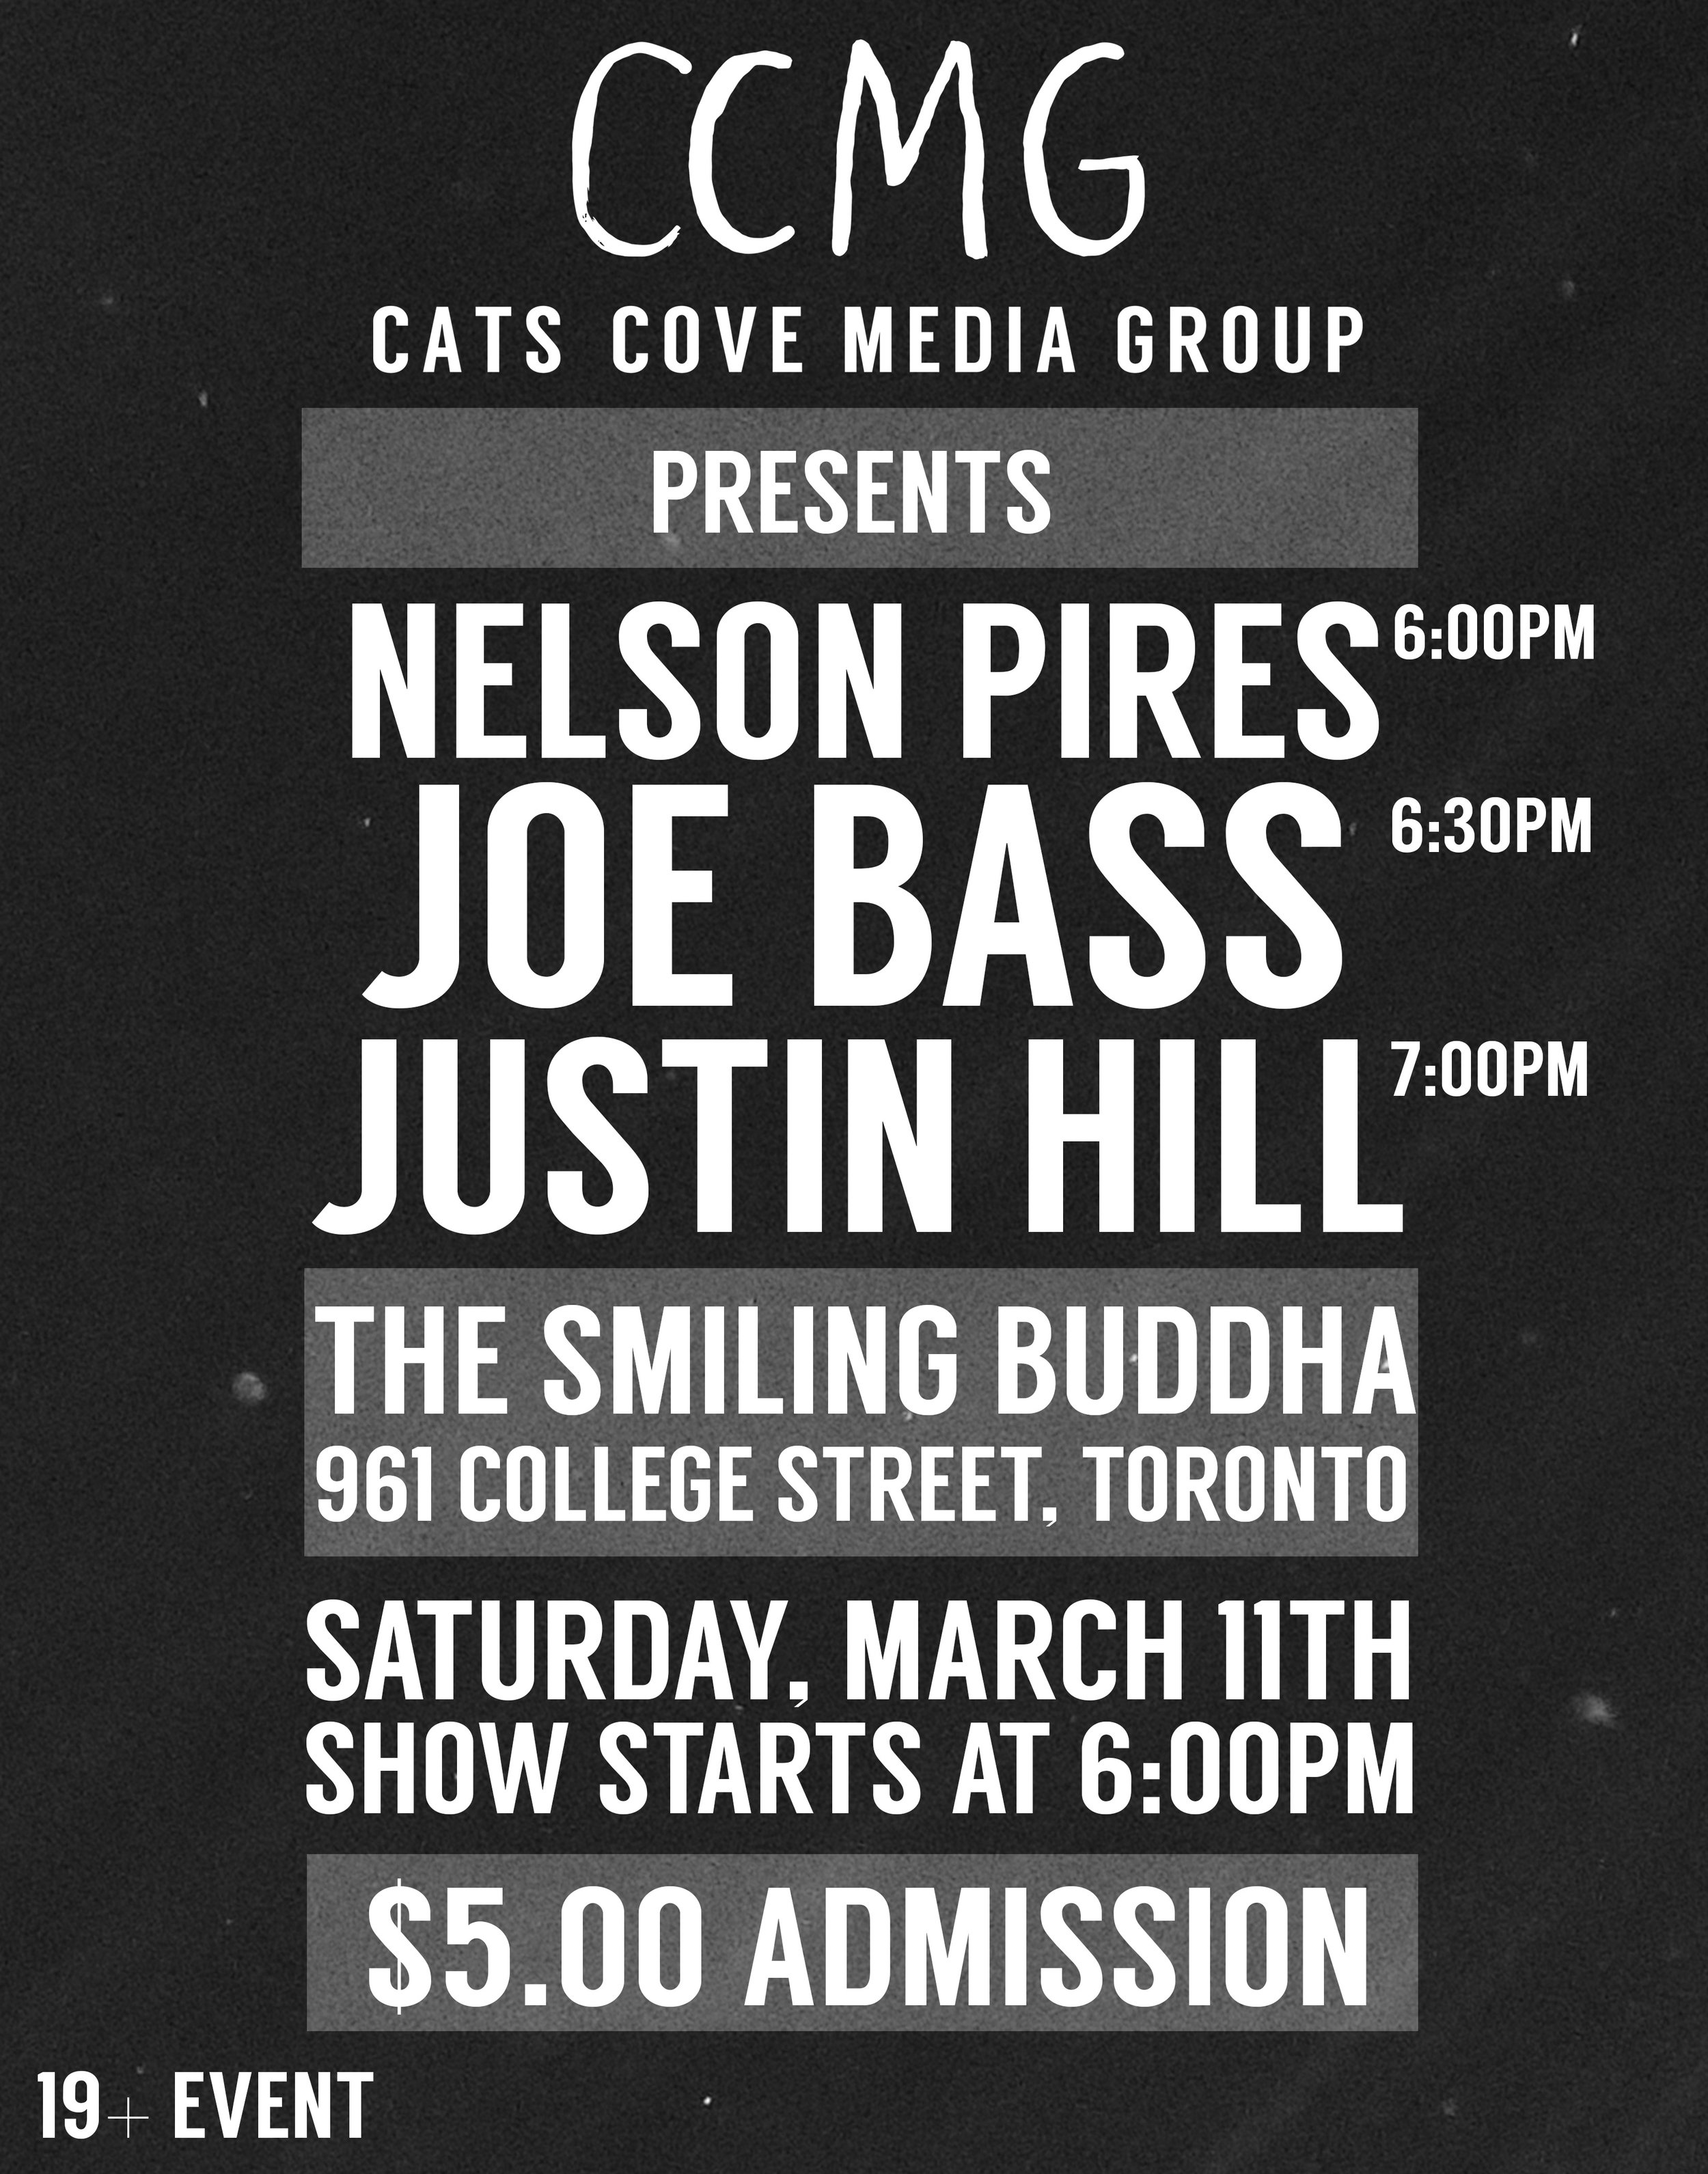 "Come out to The Smiling Buddha Basement on Saturday March 11th for an intimate performance by NELSON PIRES - playing songs from his soon to be released EP ""My Lorn Mind"", JOE BASS - showcasing their close knit musicianship, and JUSTIN HILL & THE CONUNDRUM - rocking the house with their bluesy jams to close the night!  Show starts at 6:00PM  Only $5 at the door!  19+"